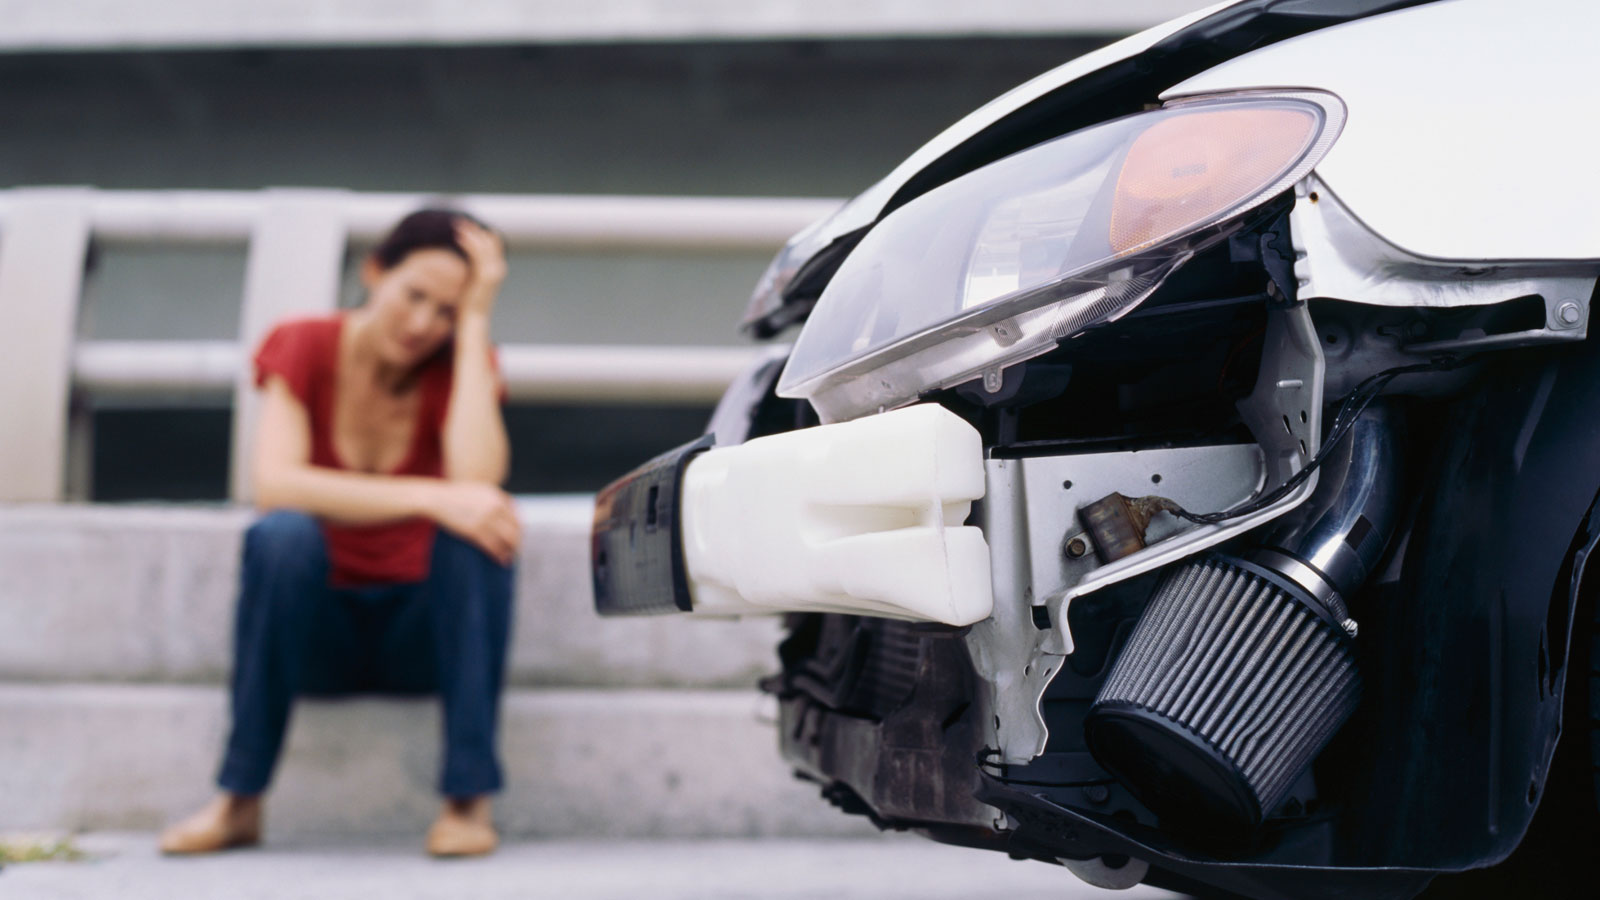 <div class='slider_caption'>		 <h1>Motor Vehicle Accidents</h1> 			<a class='slider-readmore' href='motor-vehicle-accidents'>Read More</a>